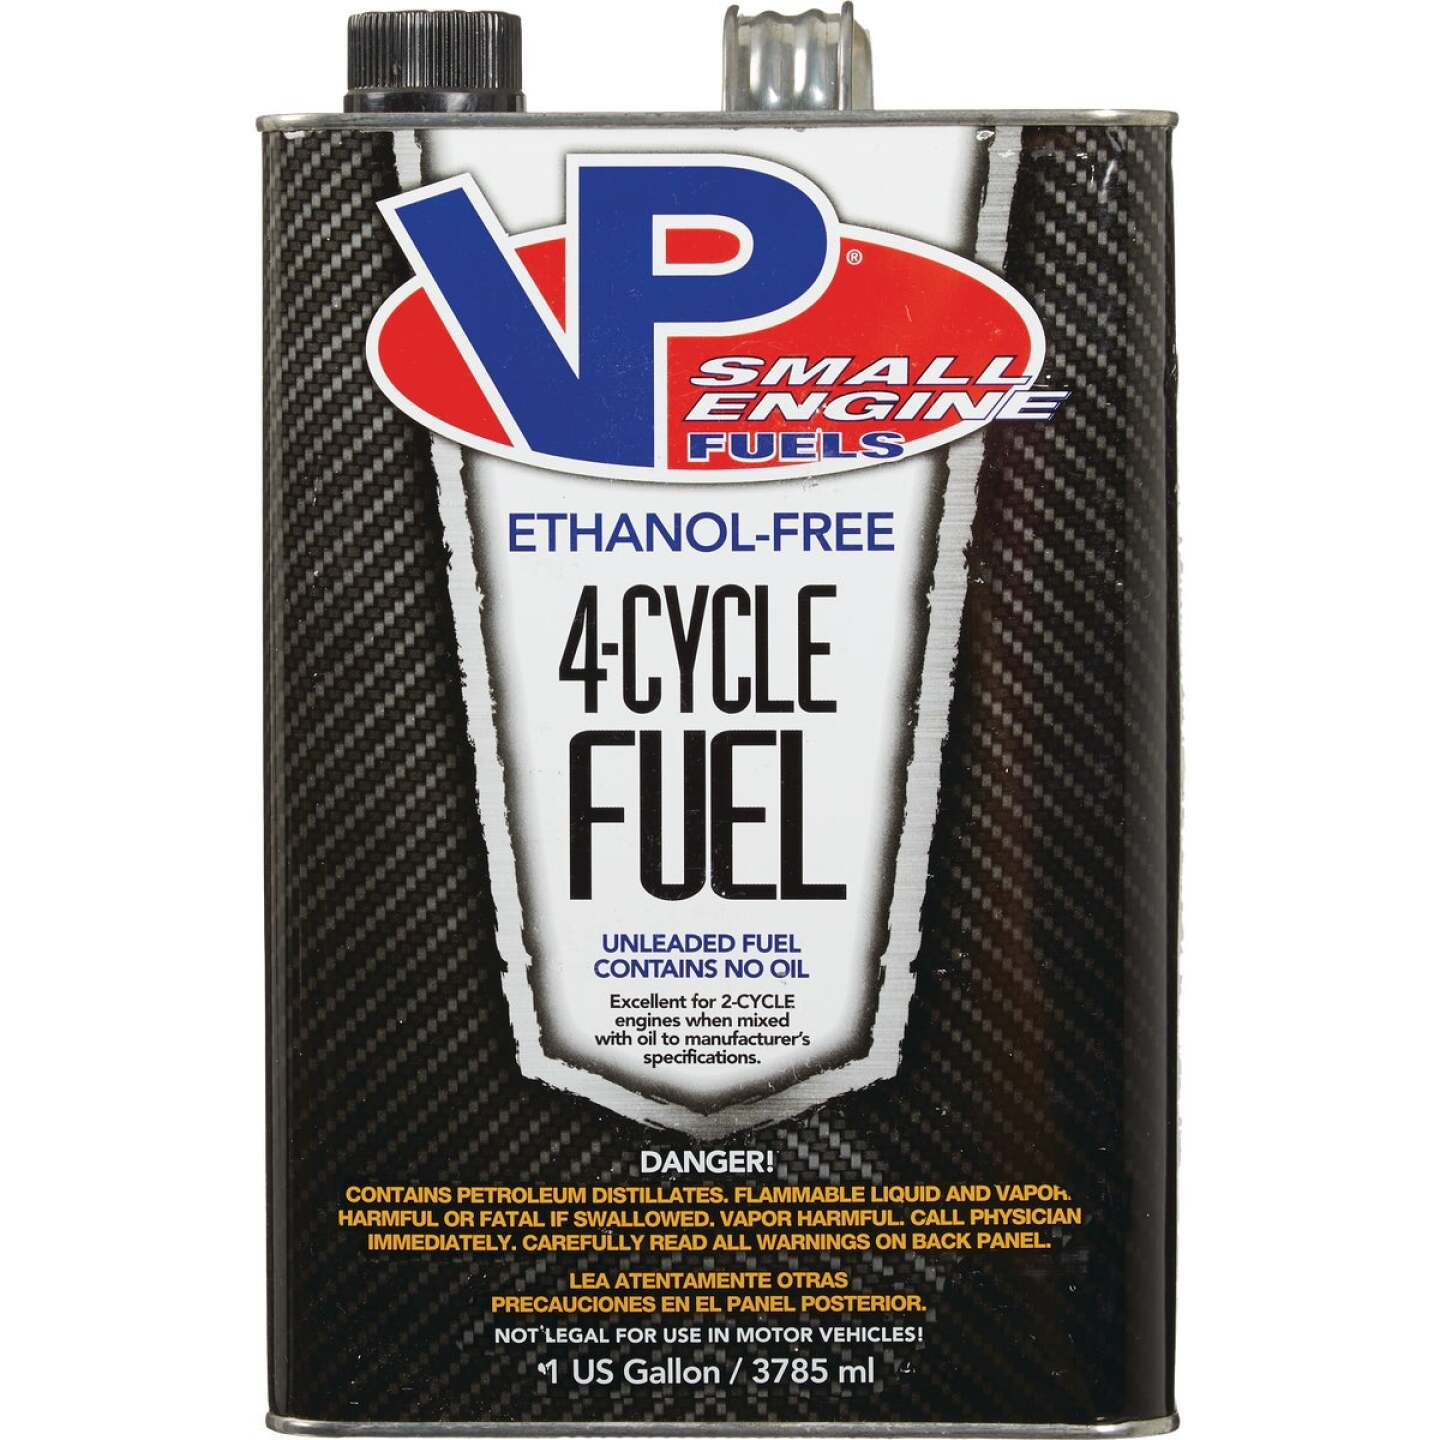 VP Small Engine Fuels 1 Gal. Ethanol-Free 4-Cycle Fuel Image 2